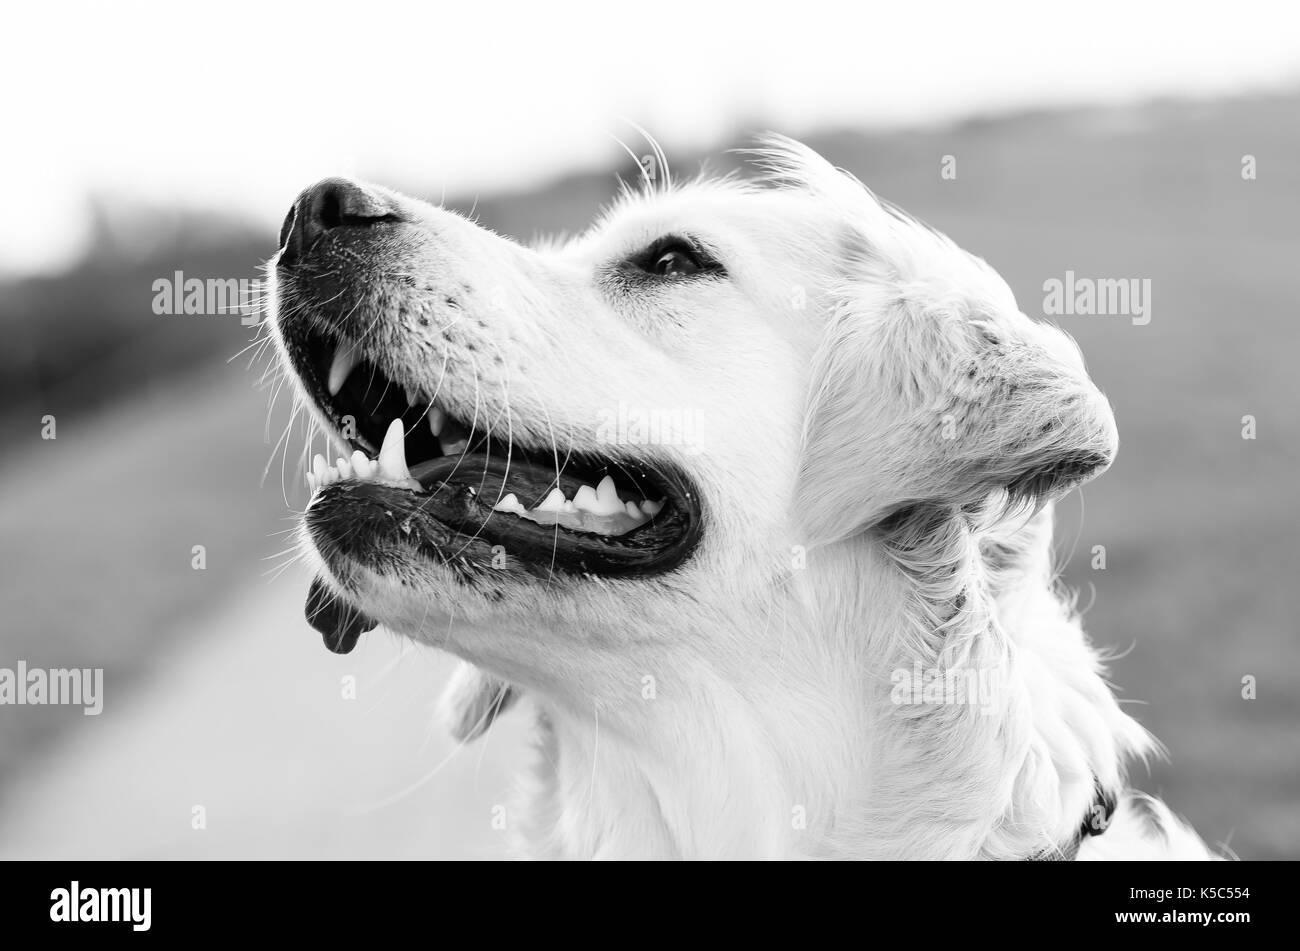 Headshot of a golden retriever in black and white - Stock Image